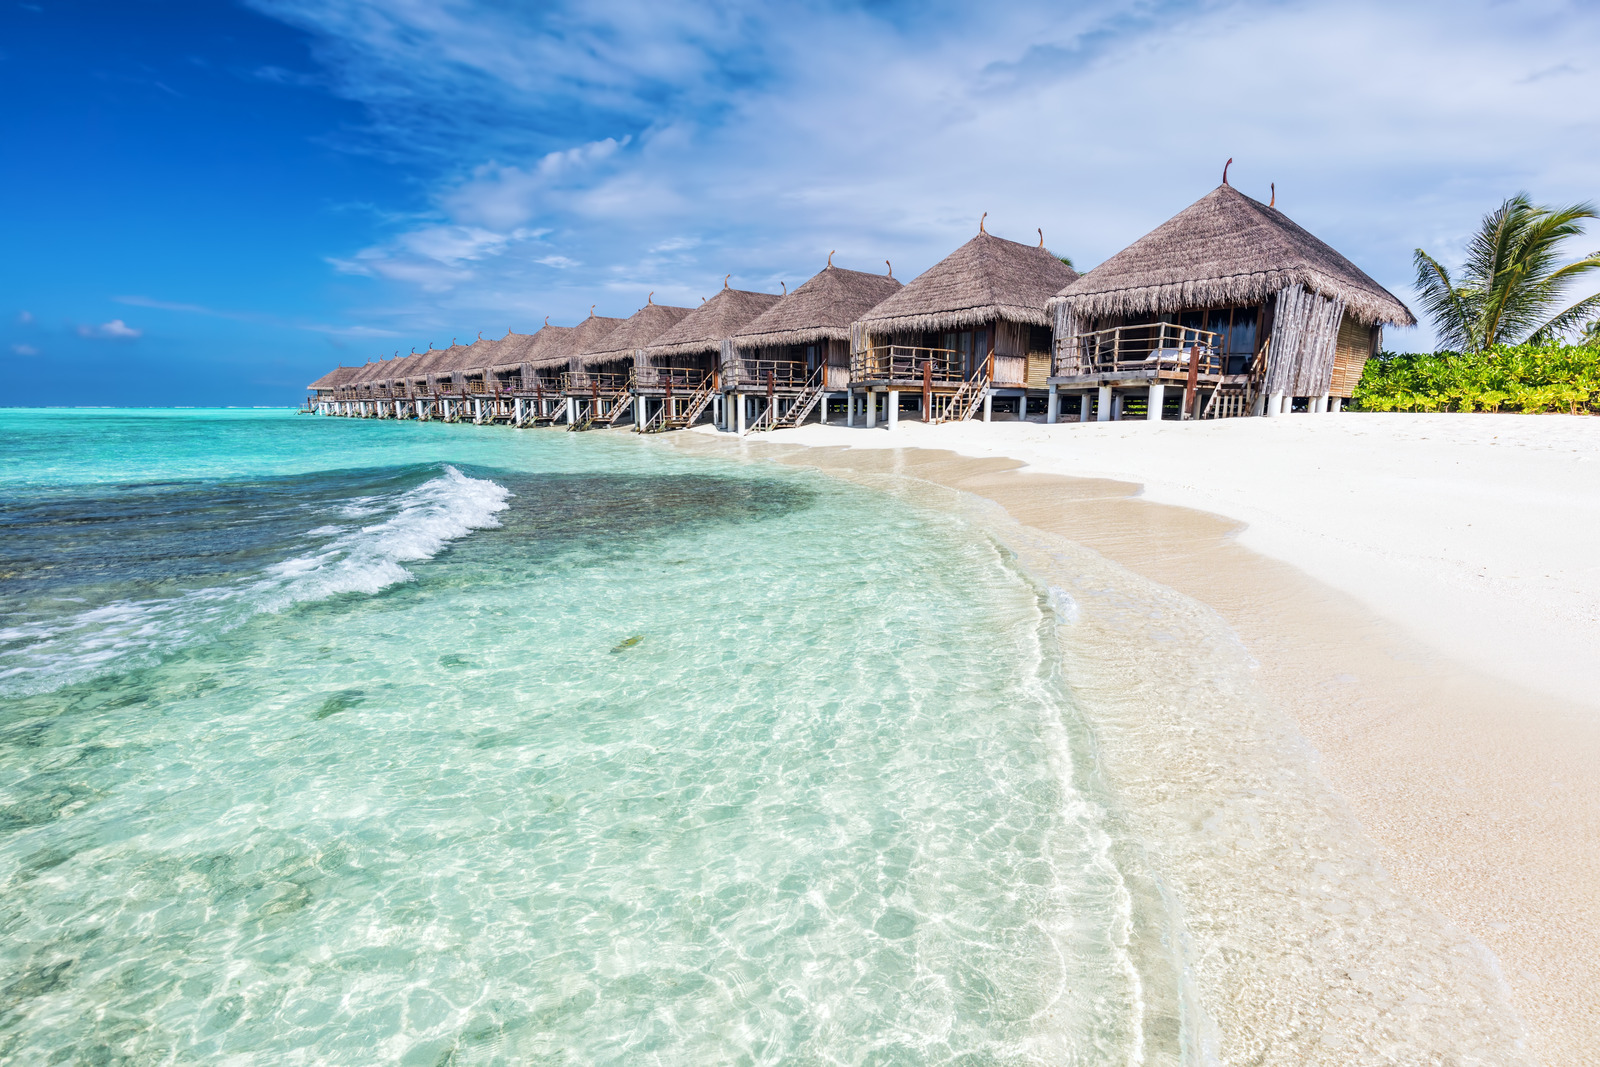 Water villas in a row by the seashore on Maldives. Tropical resort with an ocean view. Honeymoon destinations.